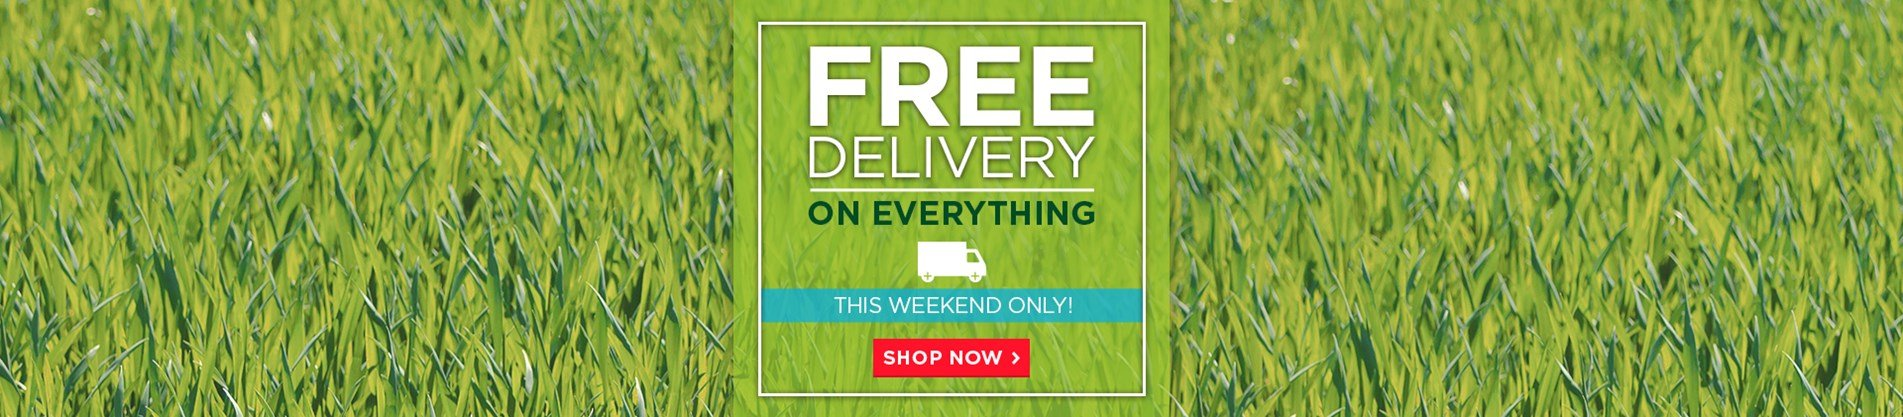 Free Delivery On Everything - This Weekend Only